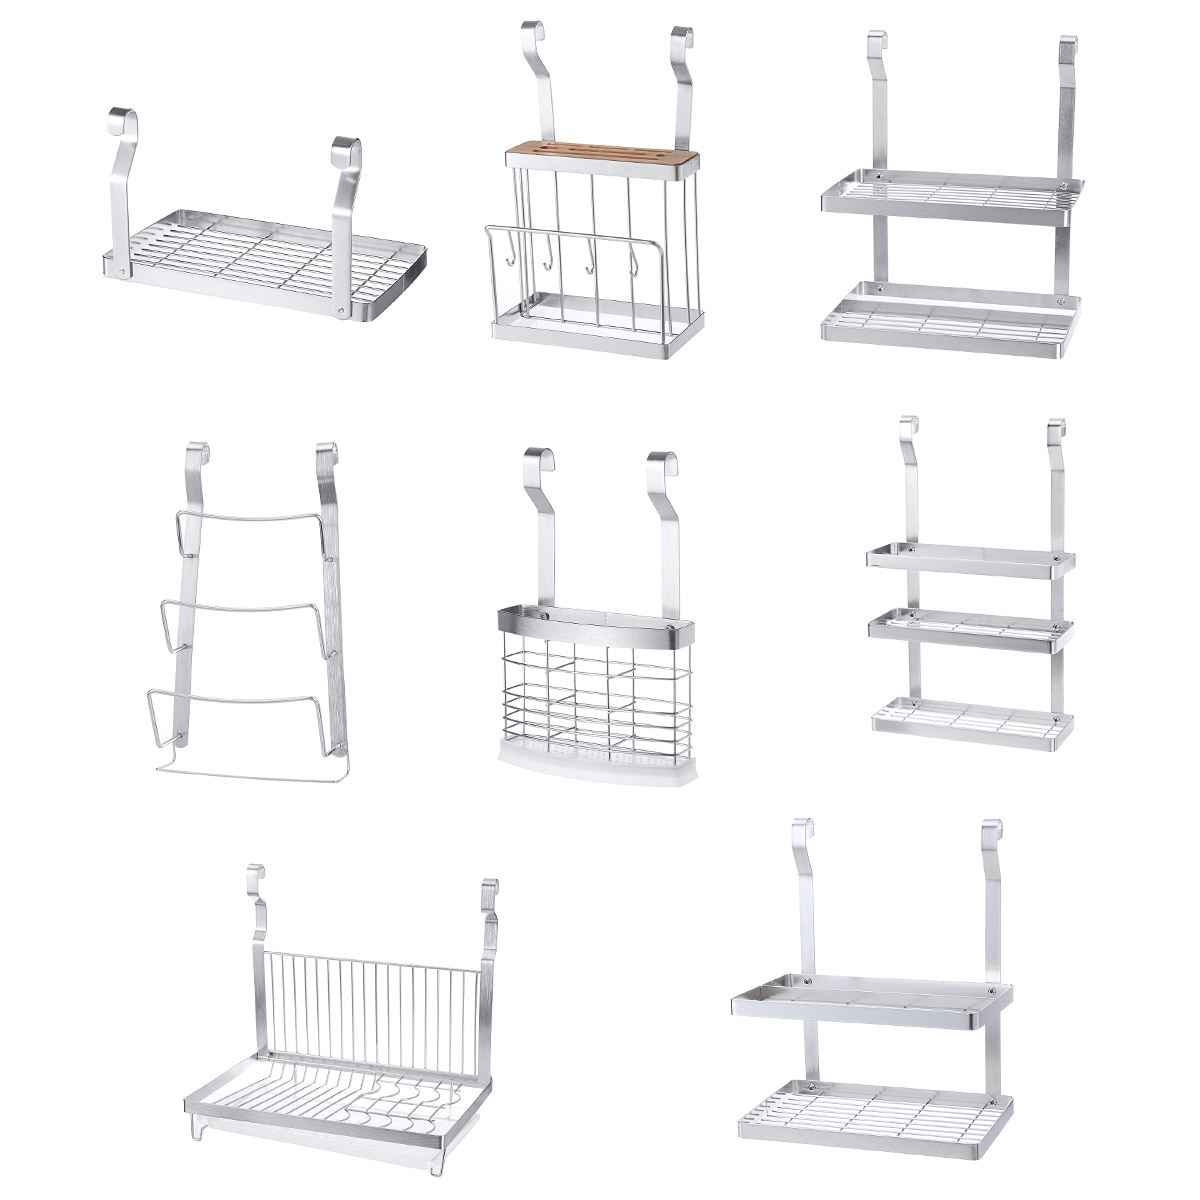 Stainless Steel Kitchen Organizer Multifunction Dish Drying Rack Wall Hanging Storage Holder Tableware Shelf Drainer 8 Types